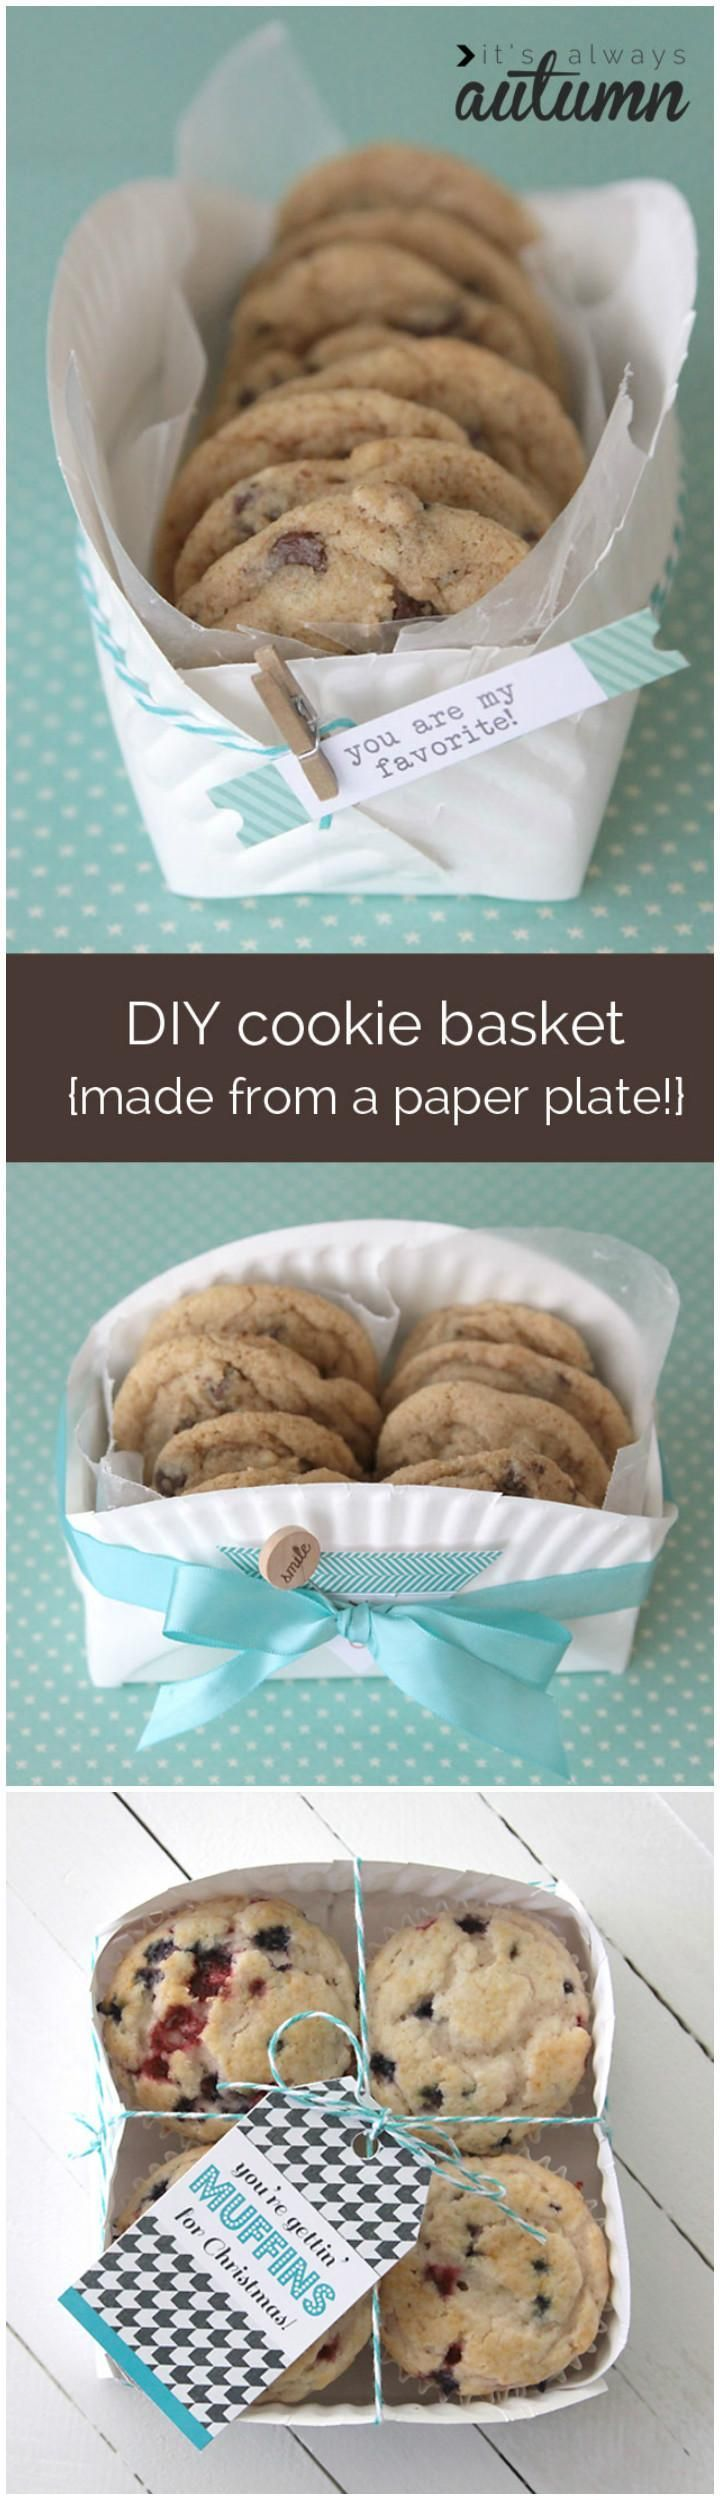 25 unique cookie gift baskets ideas on pinterest cool ideas 70 inexpensive diy gift basket ideas diy gifts page 10 of 14 cookie negle Choice Image